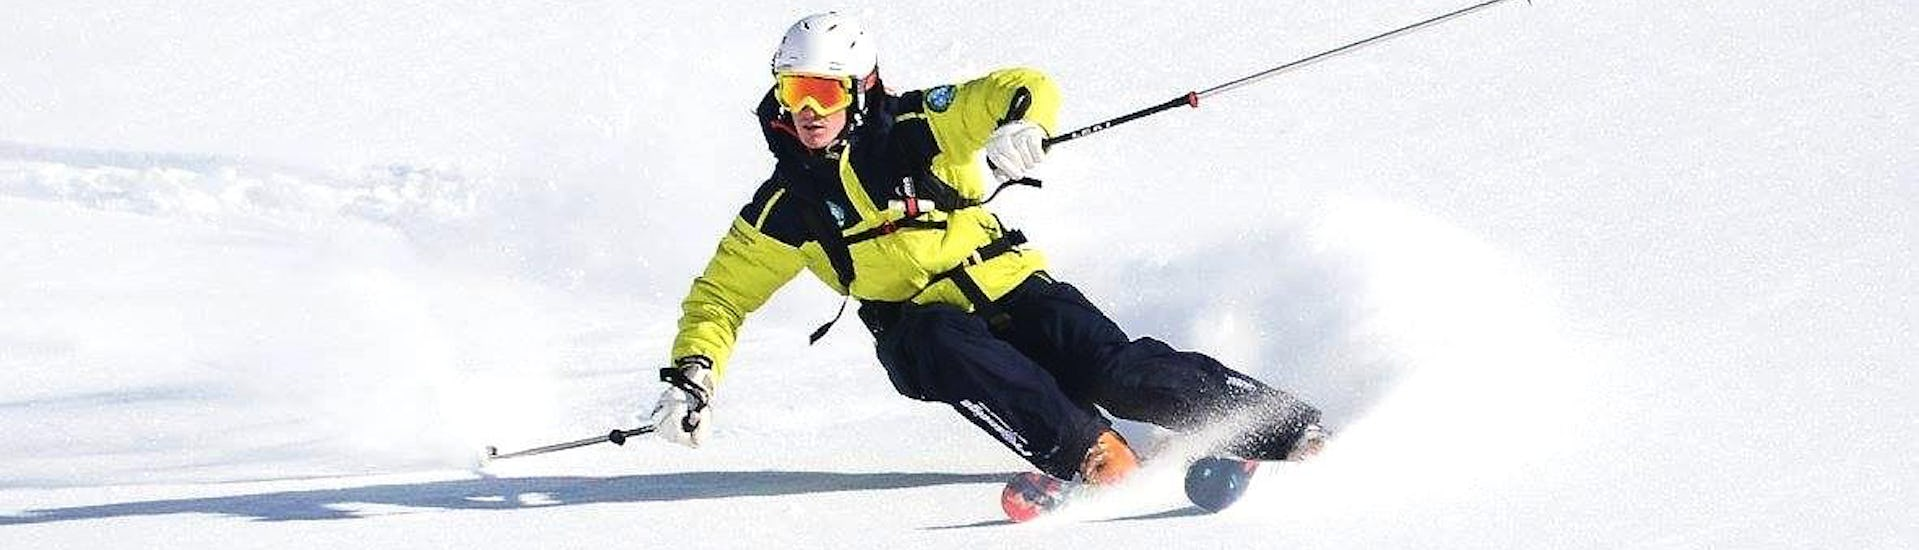 A skier is skiing down a snowy slope during hisPrivate Ski Lessons for Adults - Low Season with the ski school Prosneige Méribel.